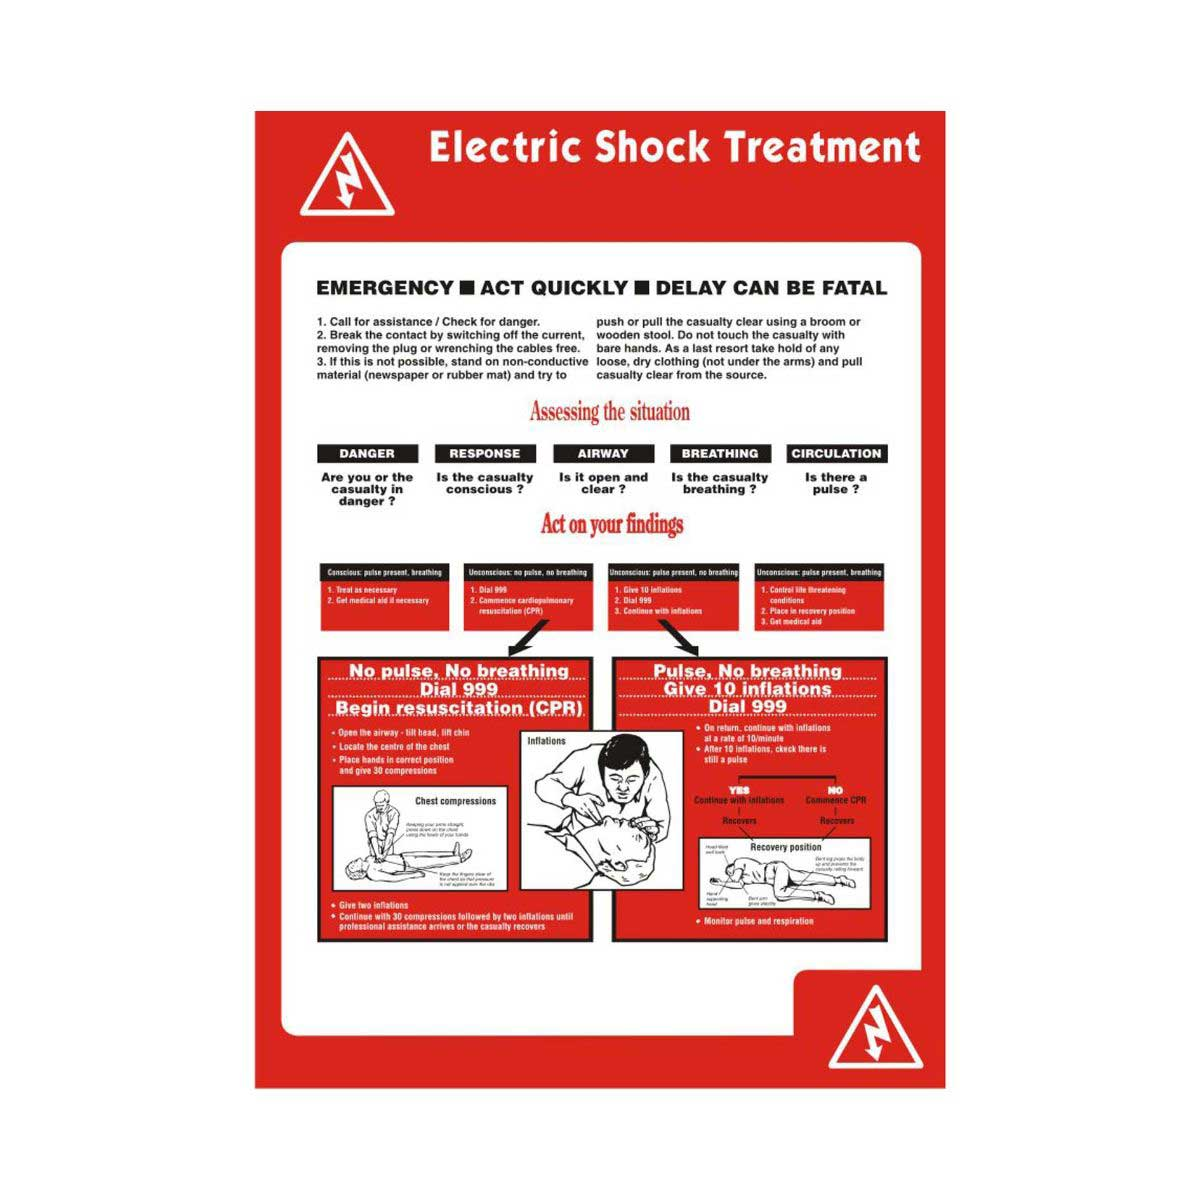 cause and effects of electric shock But just learn about the effects of electric shock and be careful in dealing with electricity excessive current can cause your cells to burn out effect your muscles including heart muscles which obviously can lead even to death.